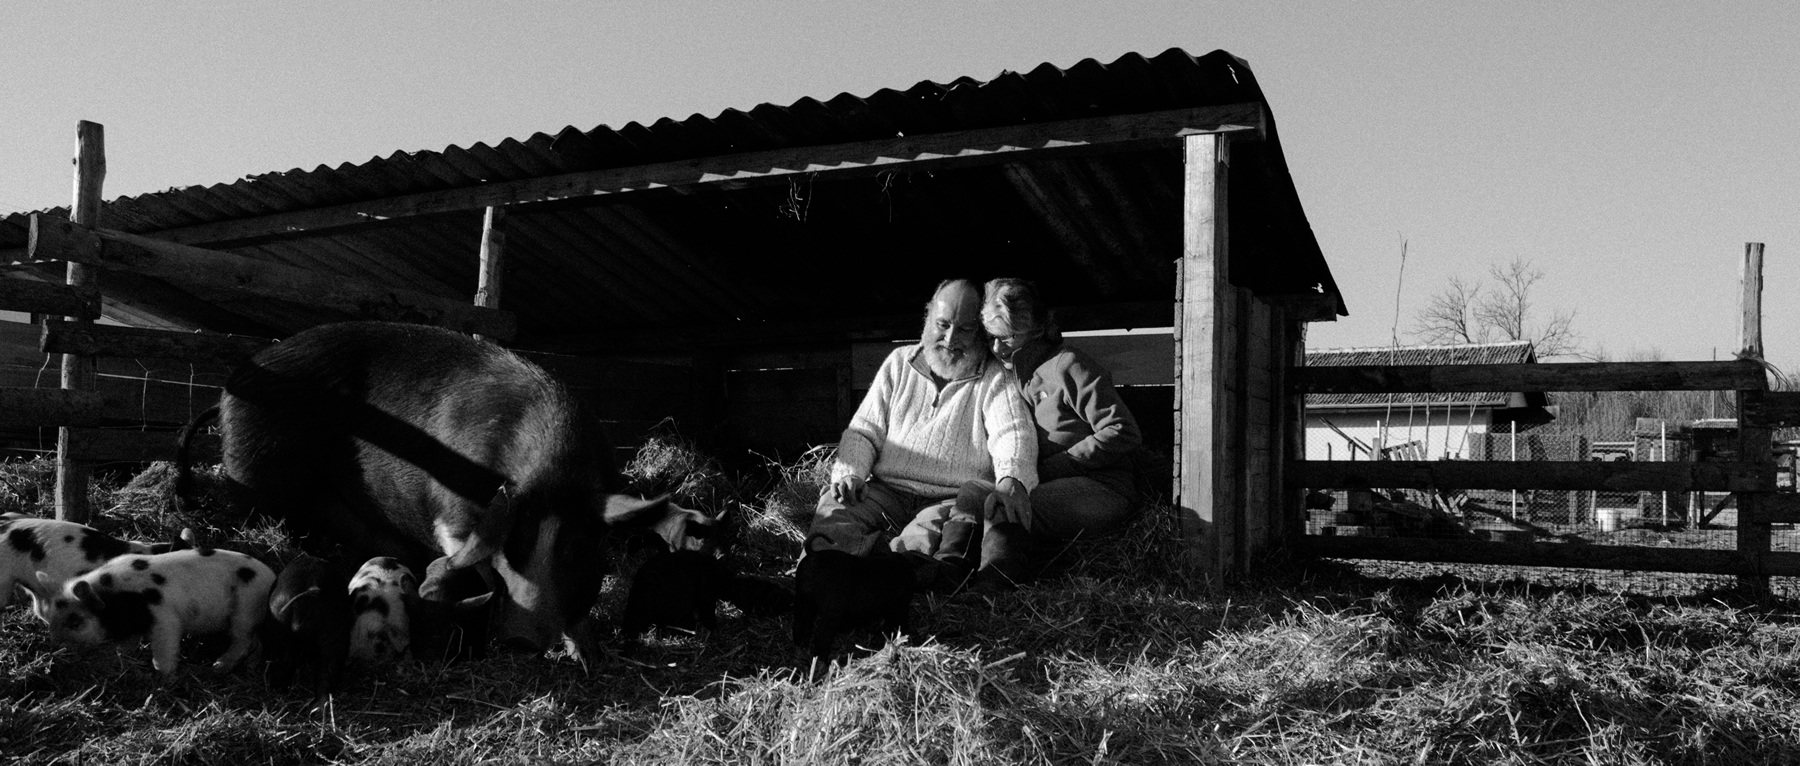 Jane and Nick with BlackBetty and piglets - December 2016